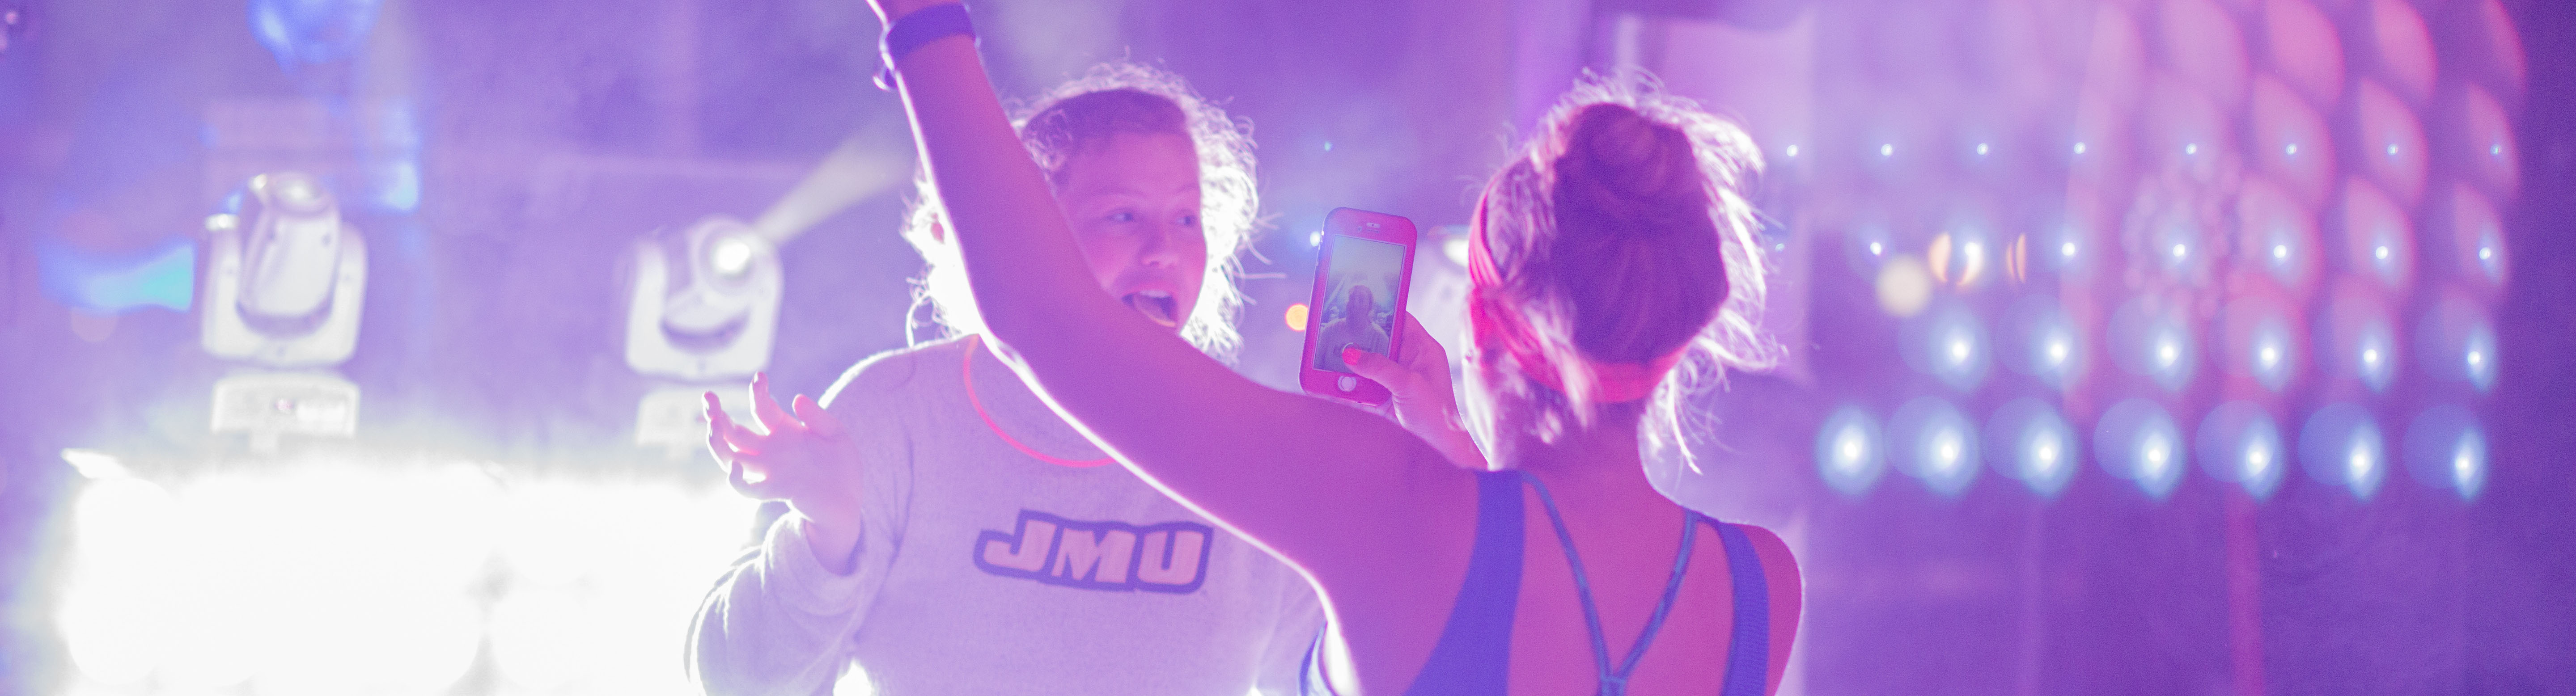 Two women, one taking a picture of the other with her phone during a concert.